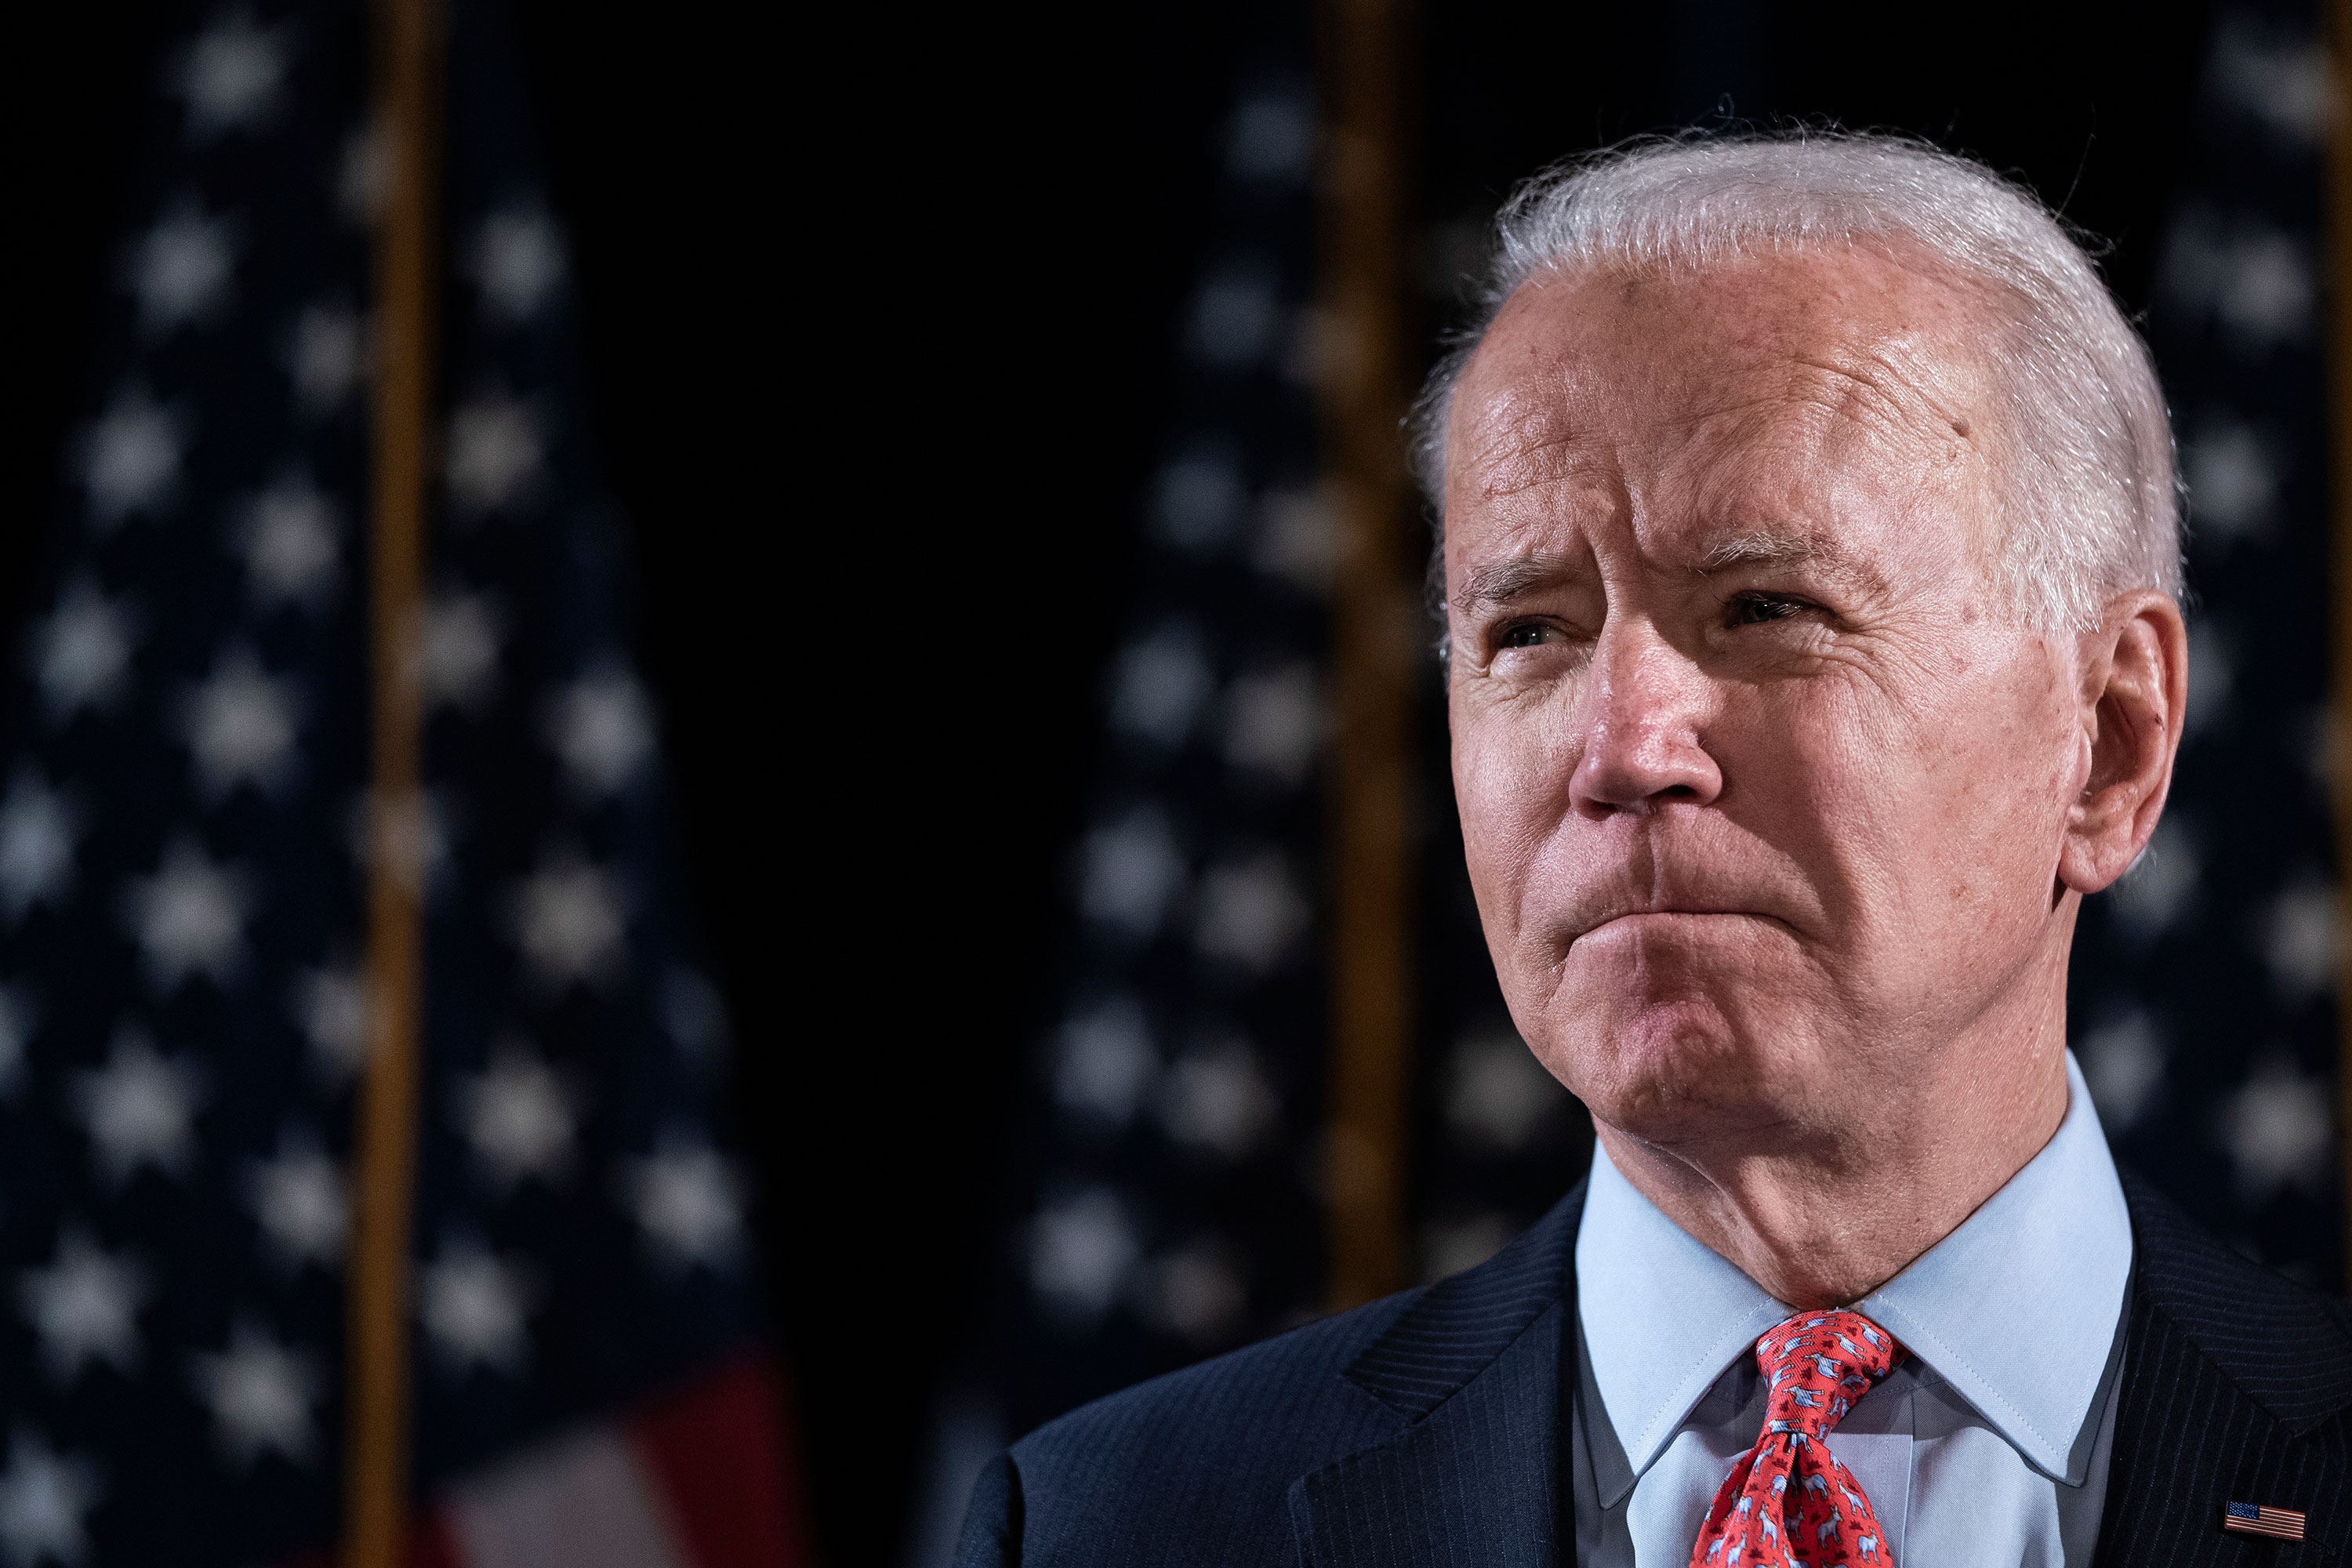 Joe Biden delivers remarks about the coronavirus outbreak, in Wilmington, Delaware, on March 12.